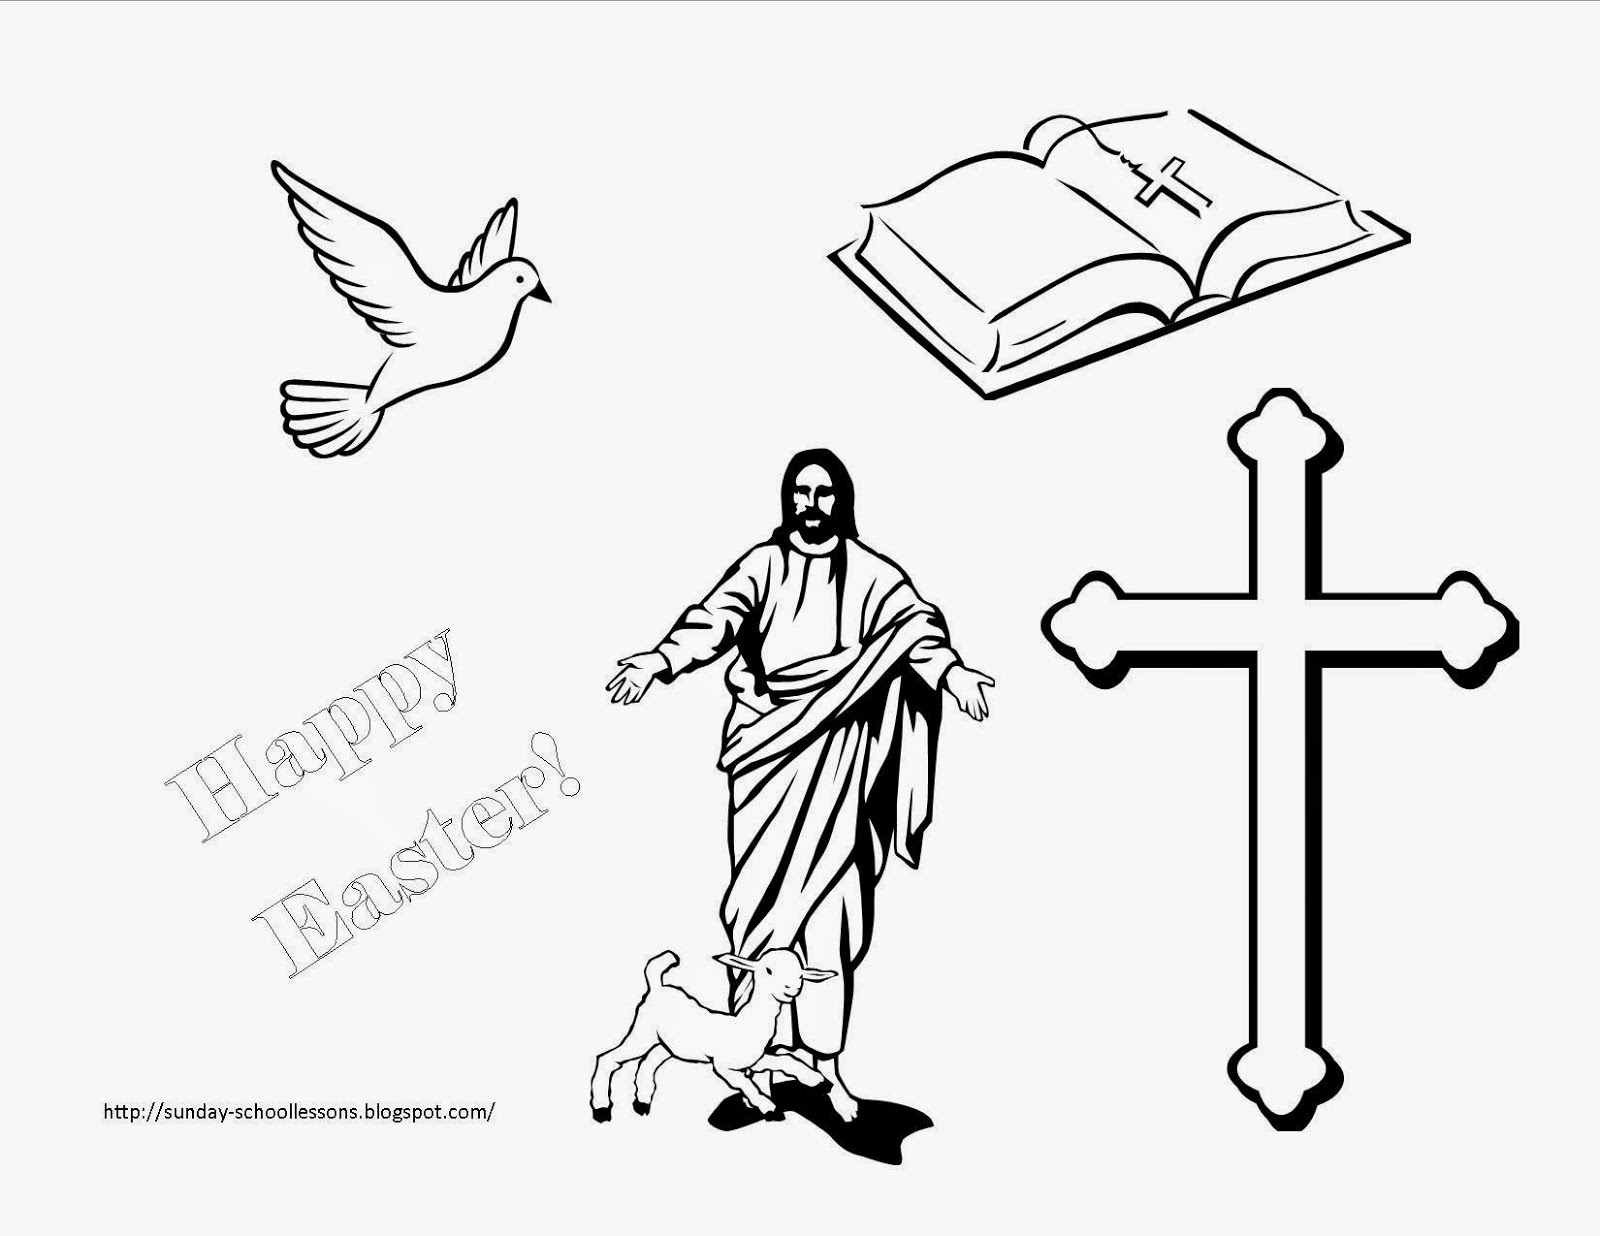 Sunday School Lessons of Plenty: Sunday School Coloring Pages